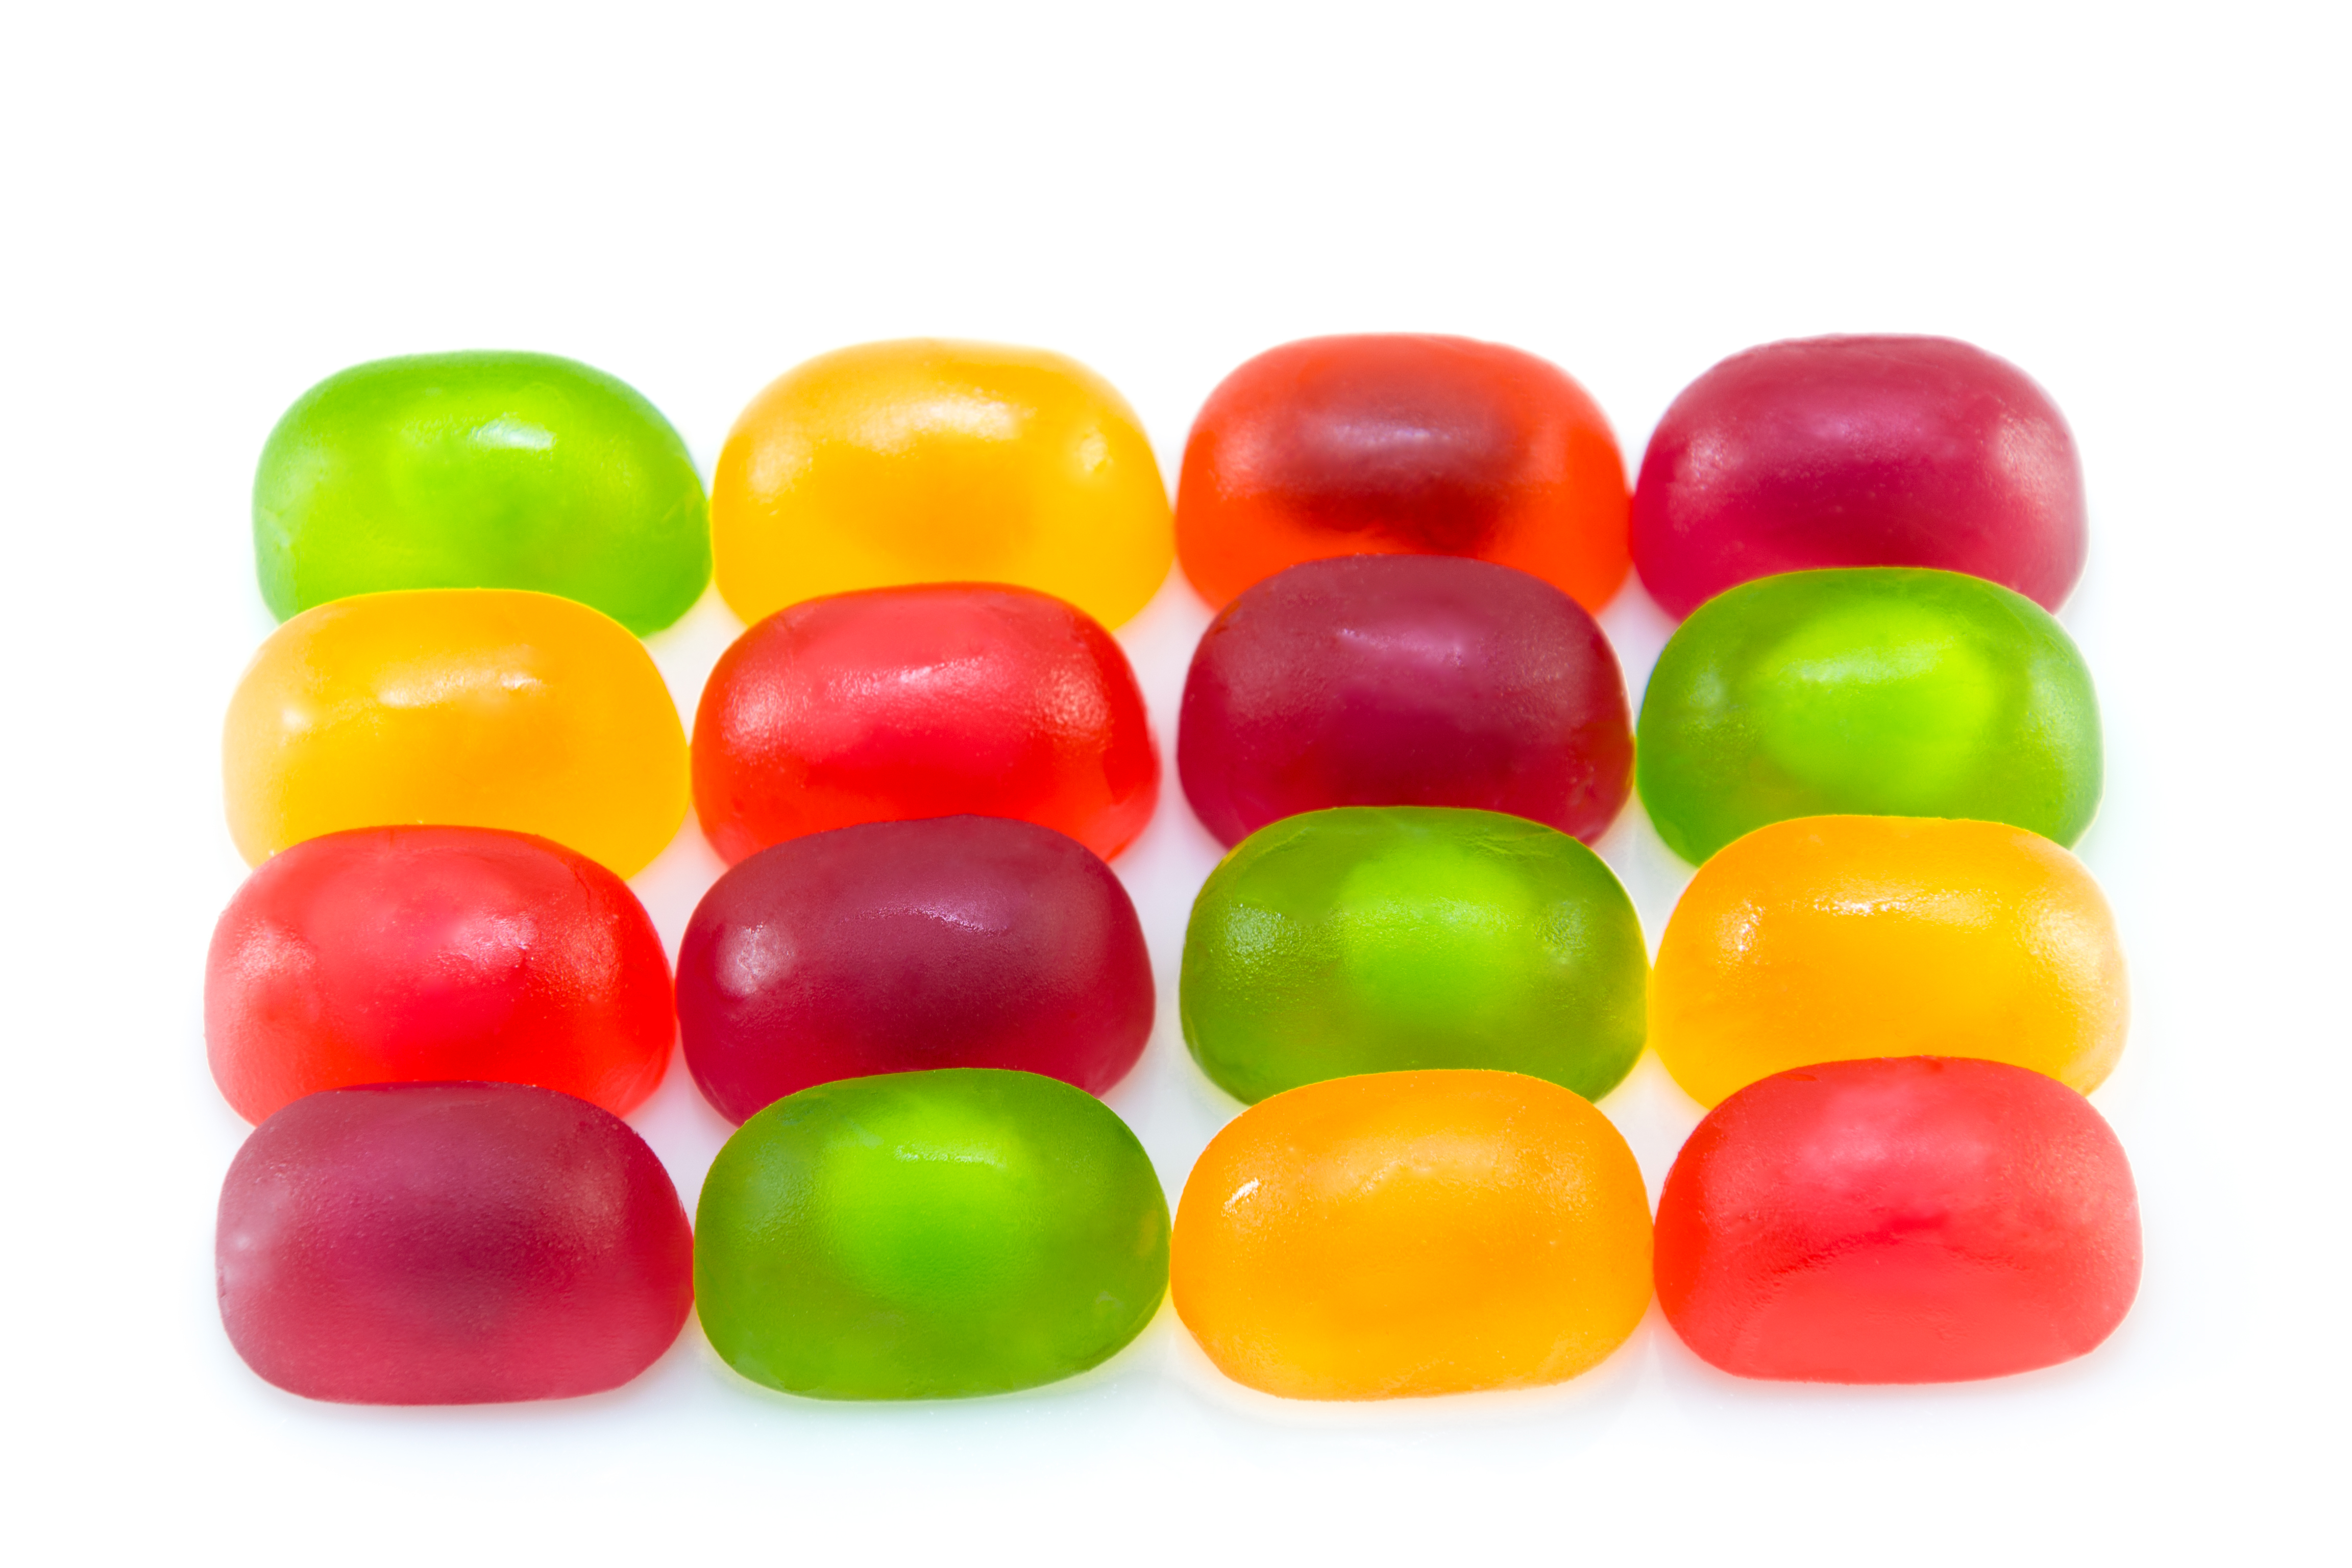 Fruit gummi or jelly candies assortment on white.